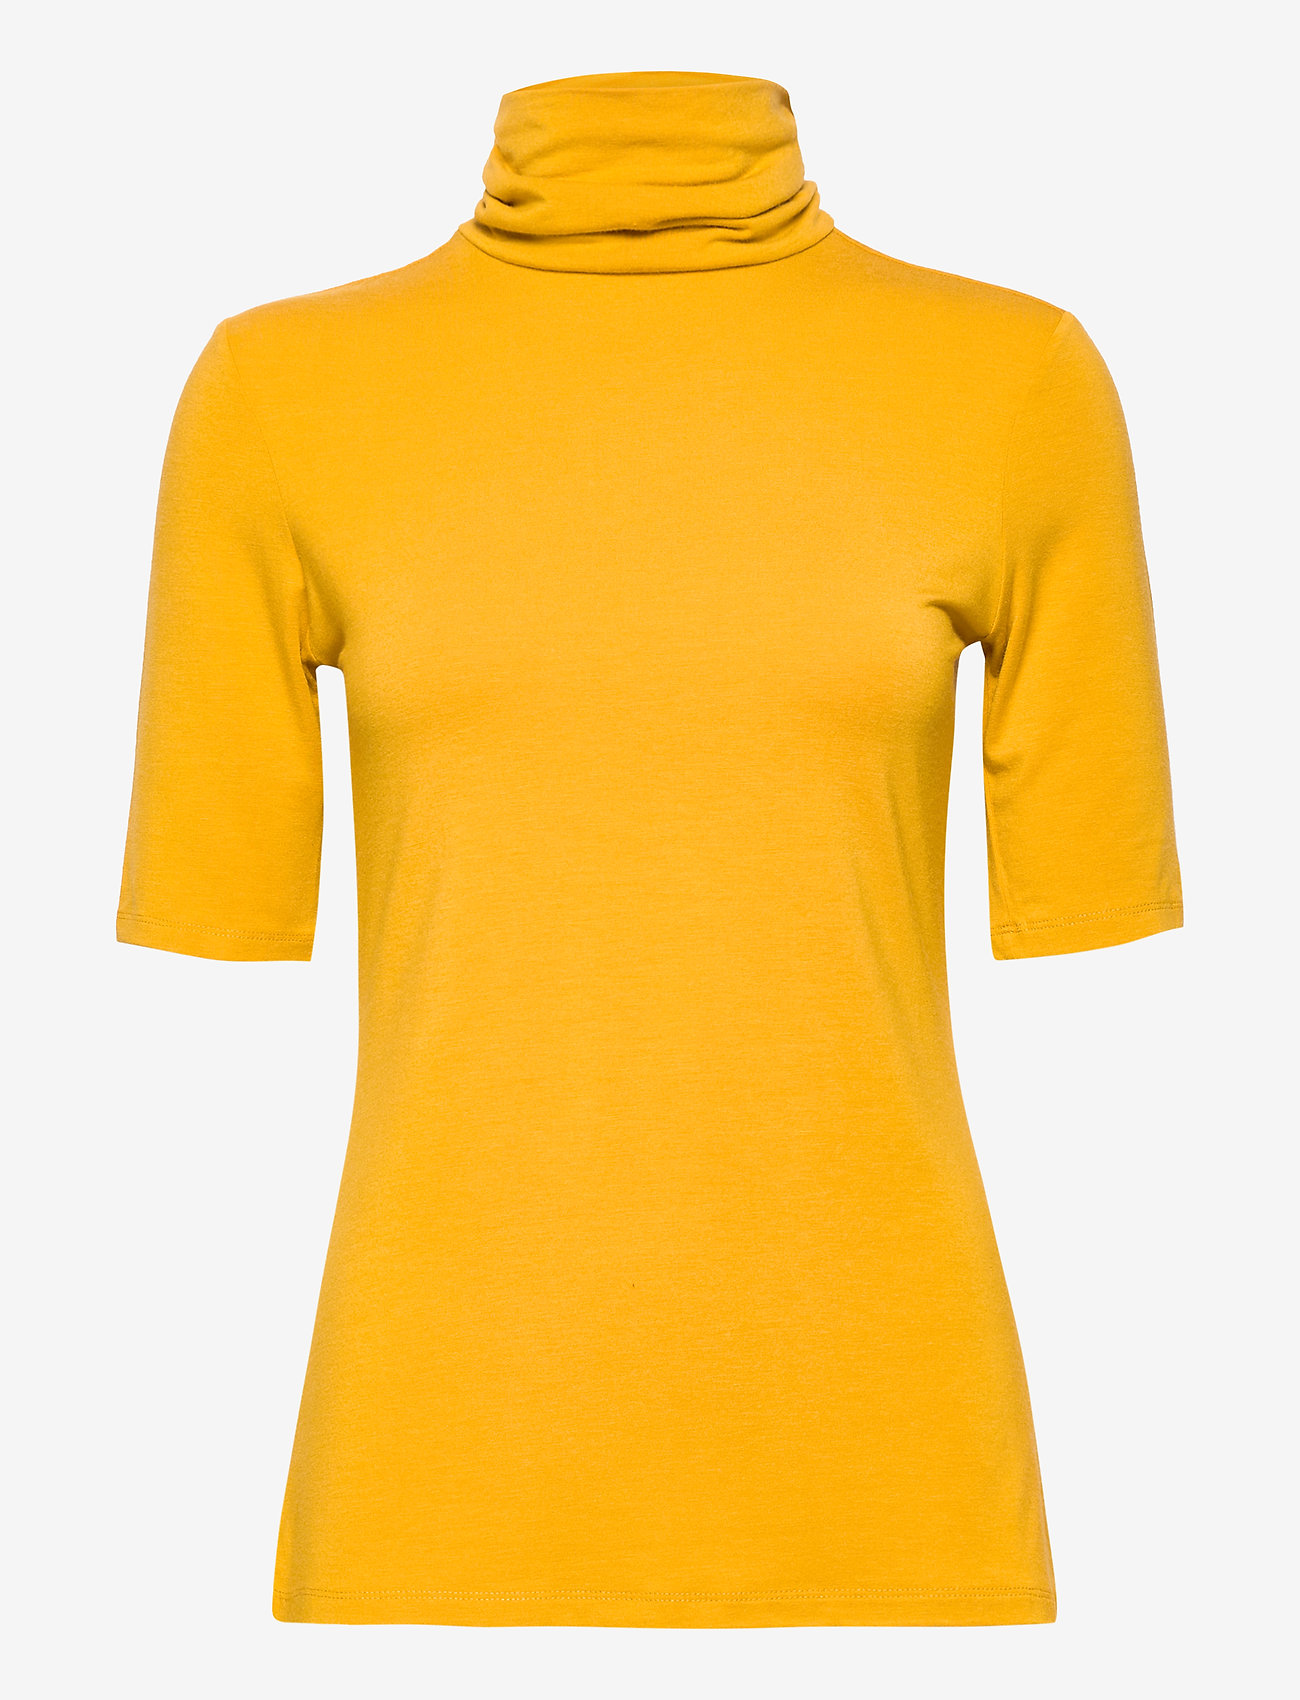 Esprit Collection - T-Shirts - t-shirts - honey yellow - 0